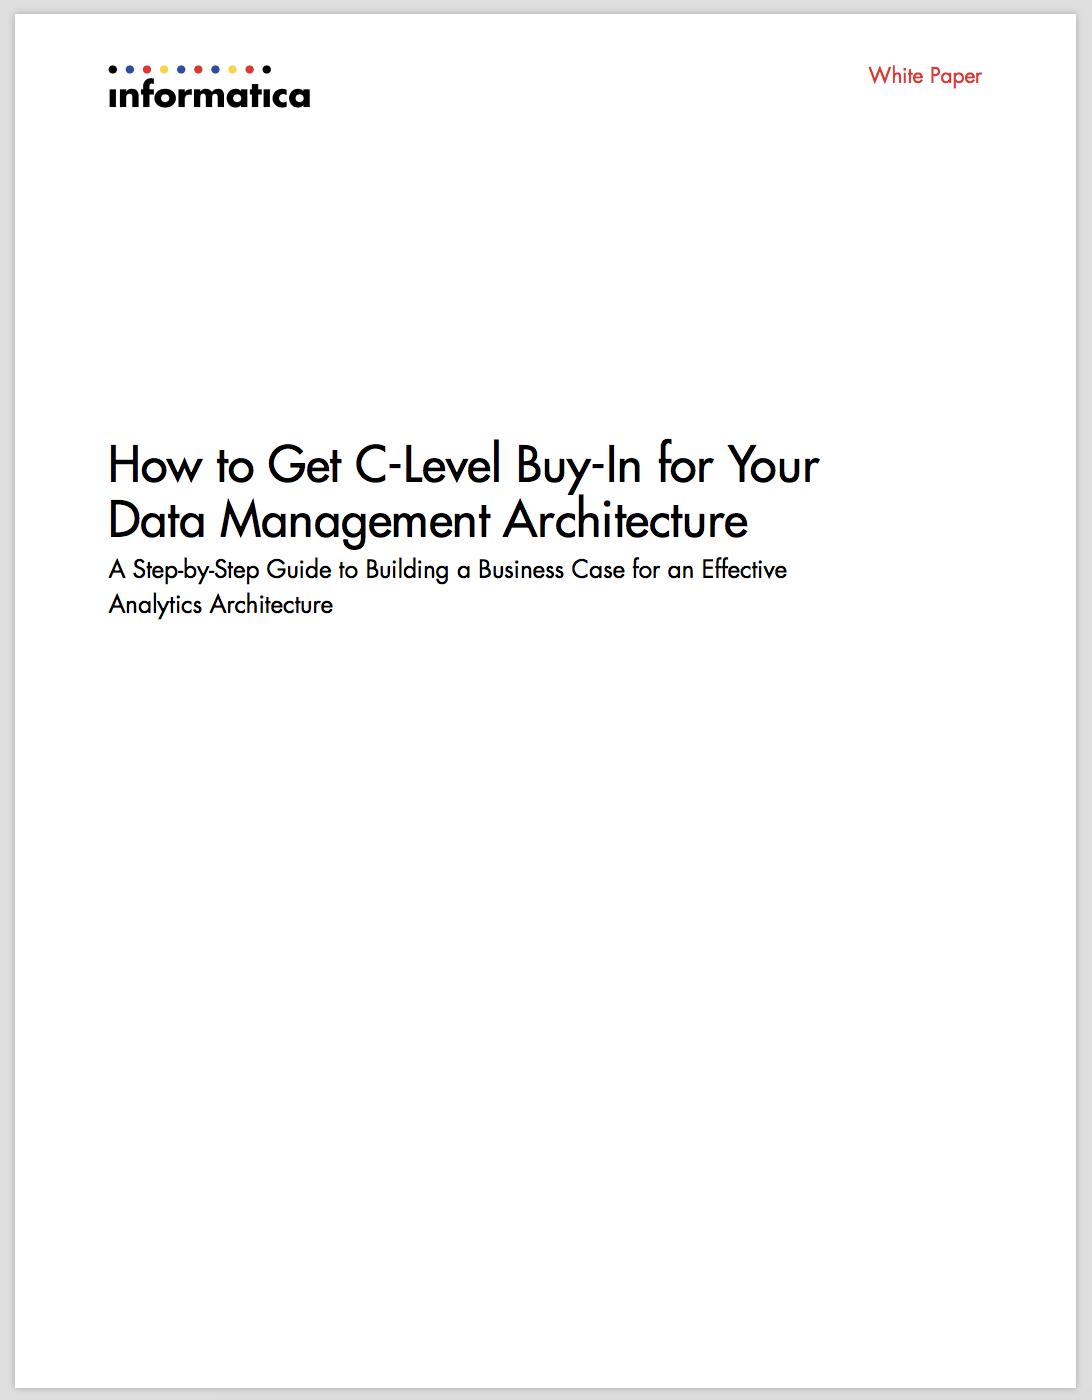 How to Get C-Level Buy-In for Your Data Management Architecture